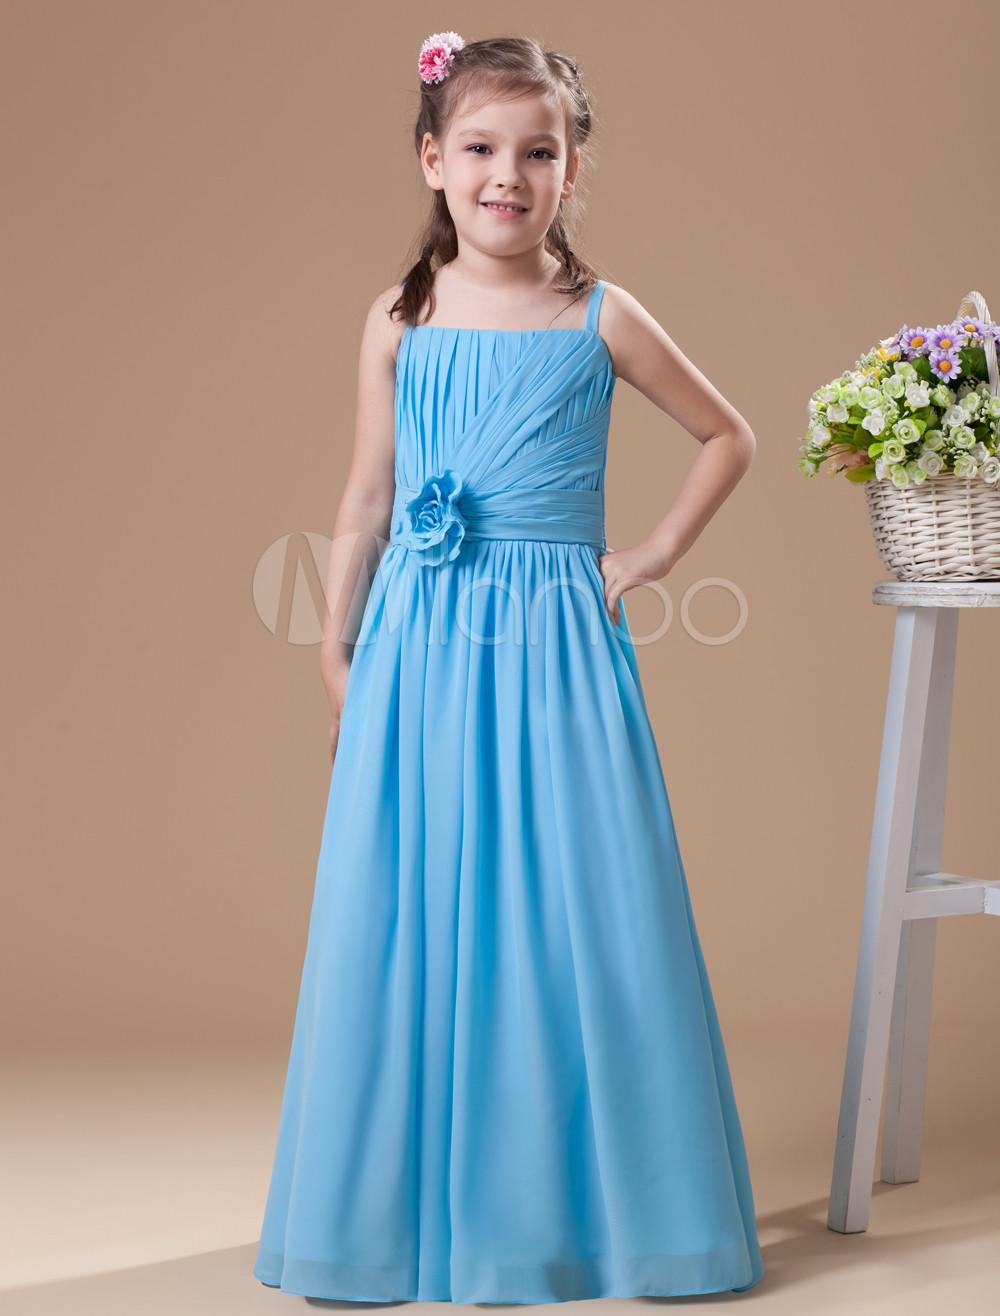 Sweet Blue Chiffon Strapless Floor Length Junior Bridesmaid Dress